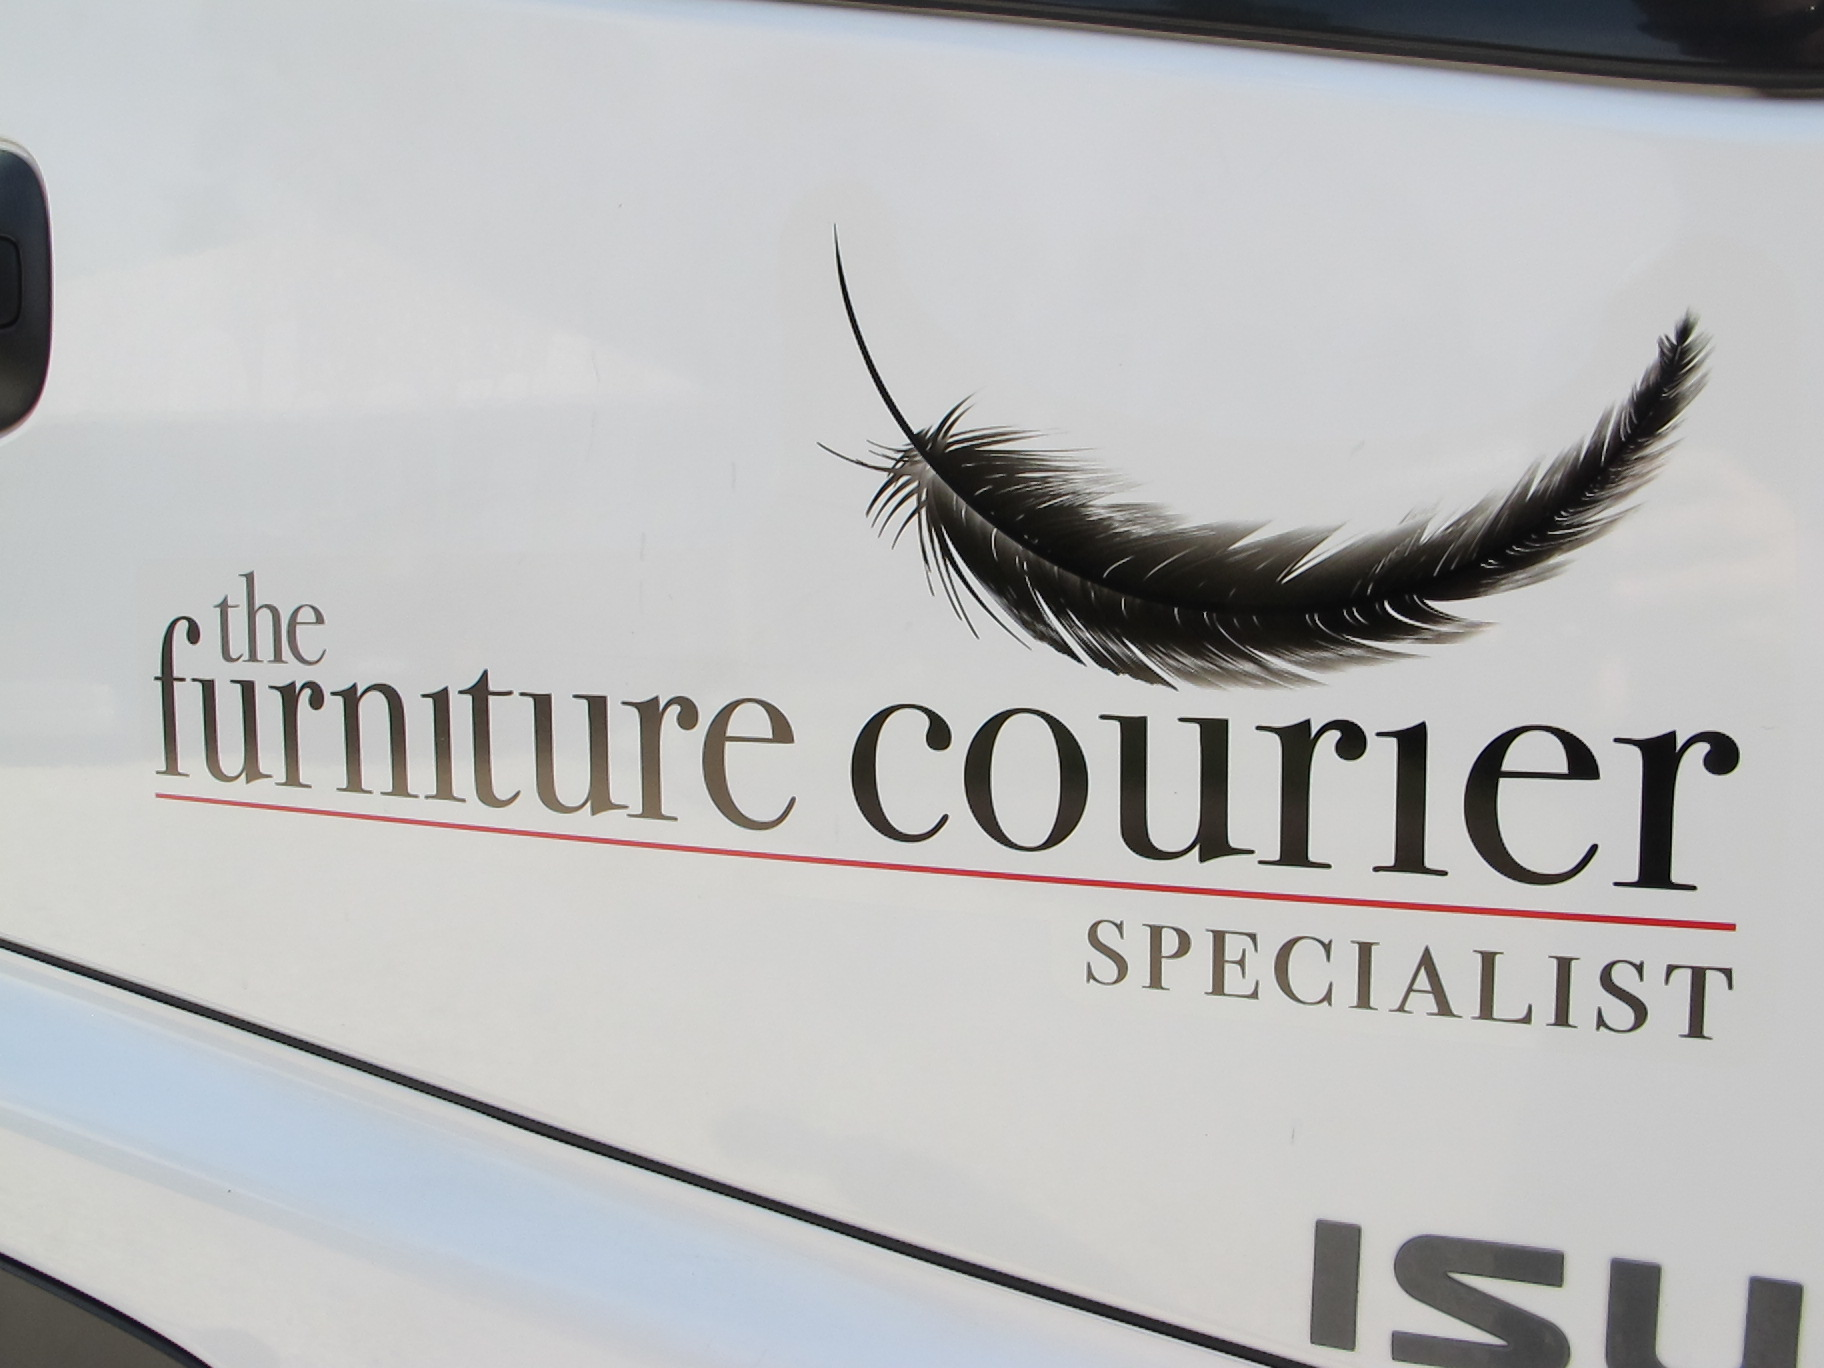 The Furniture Courier